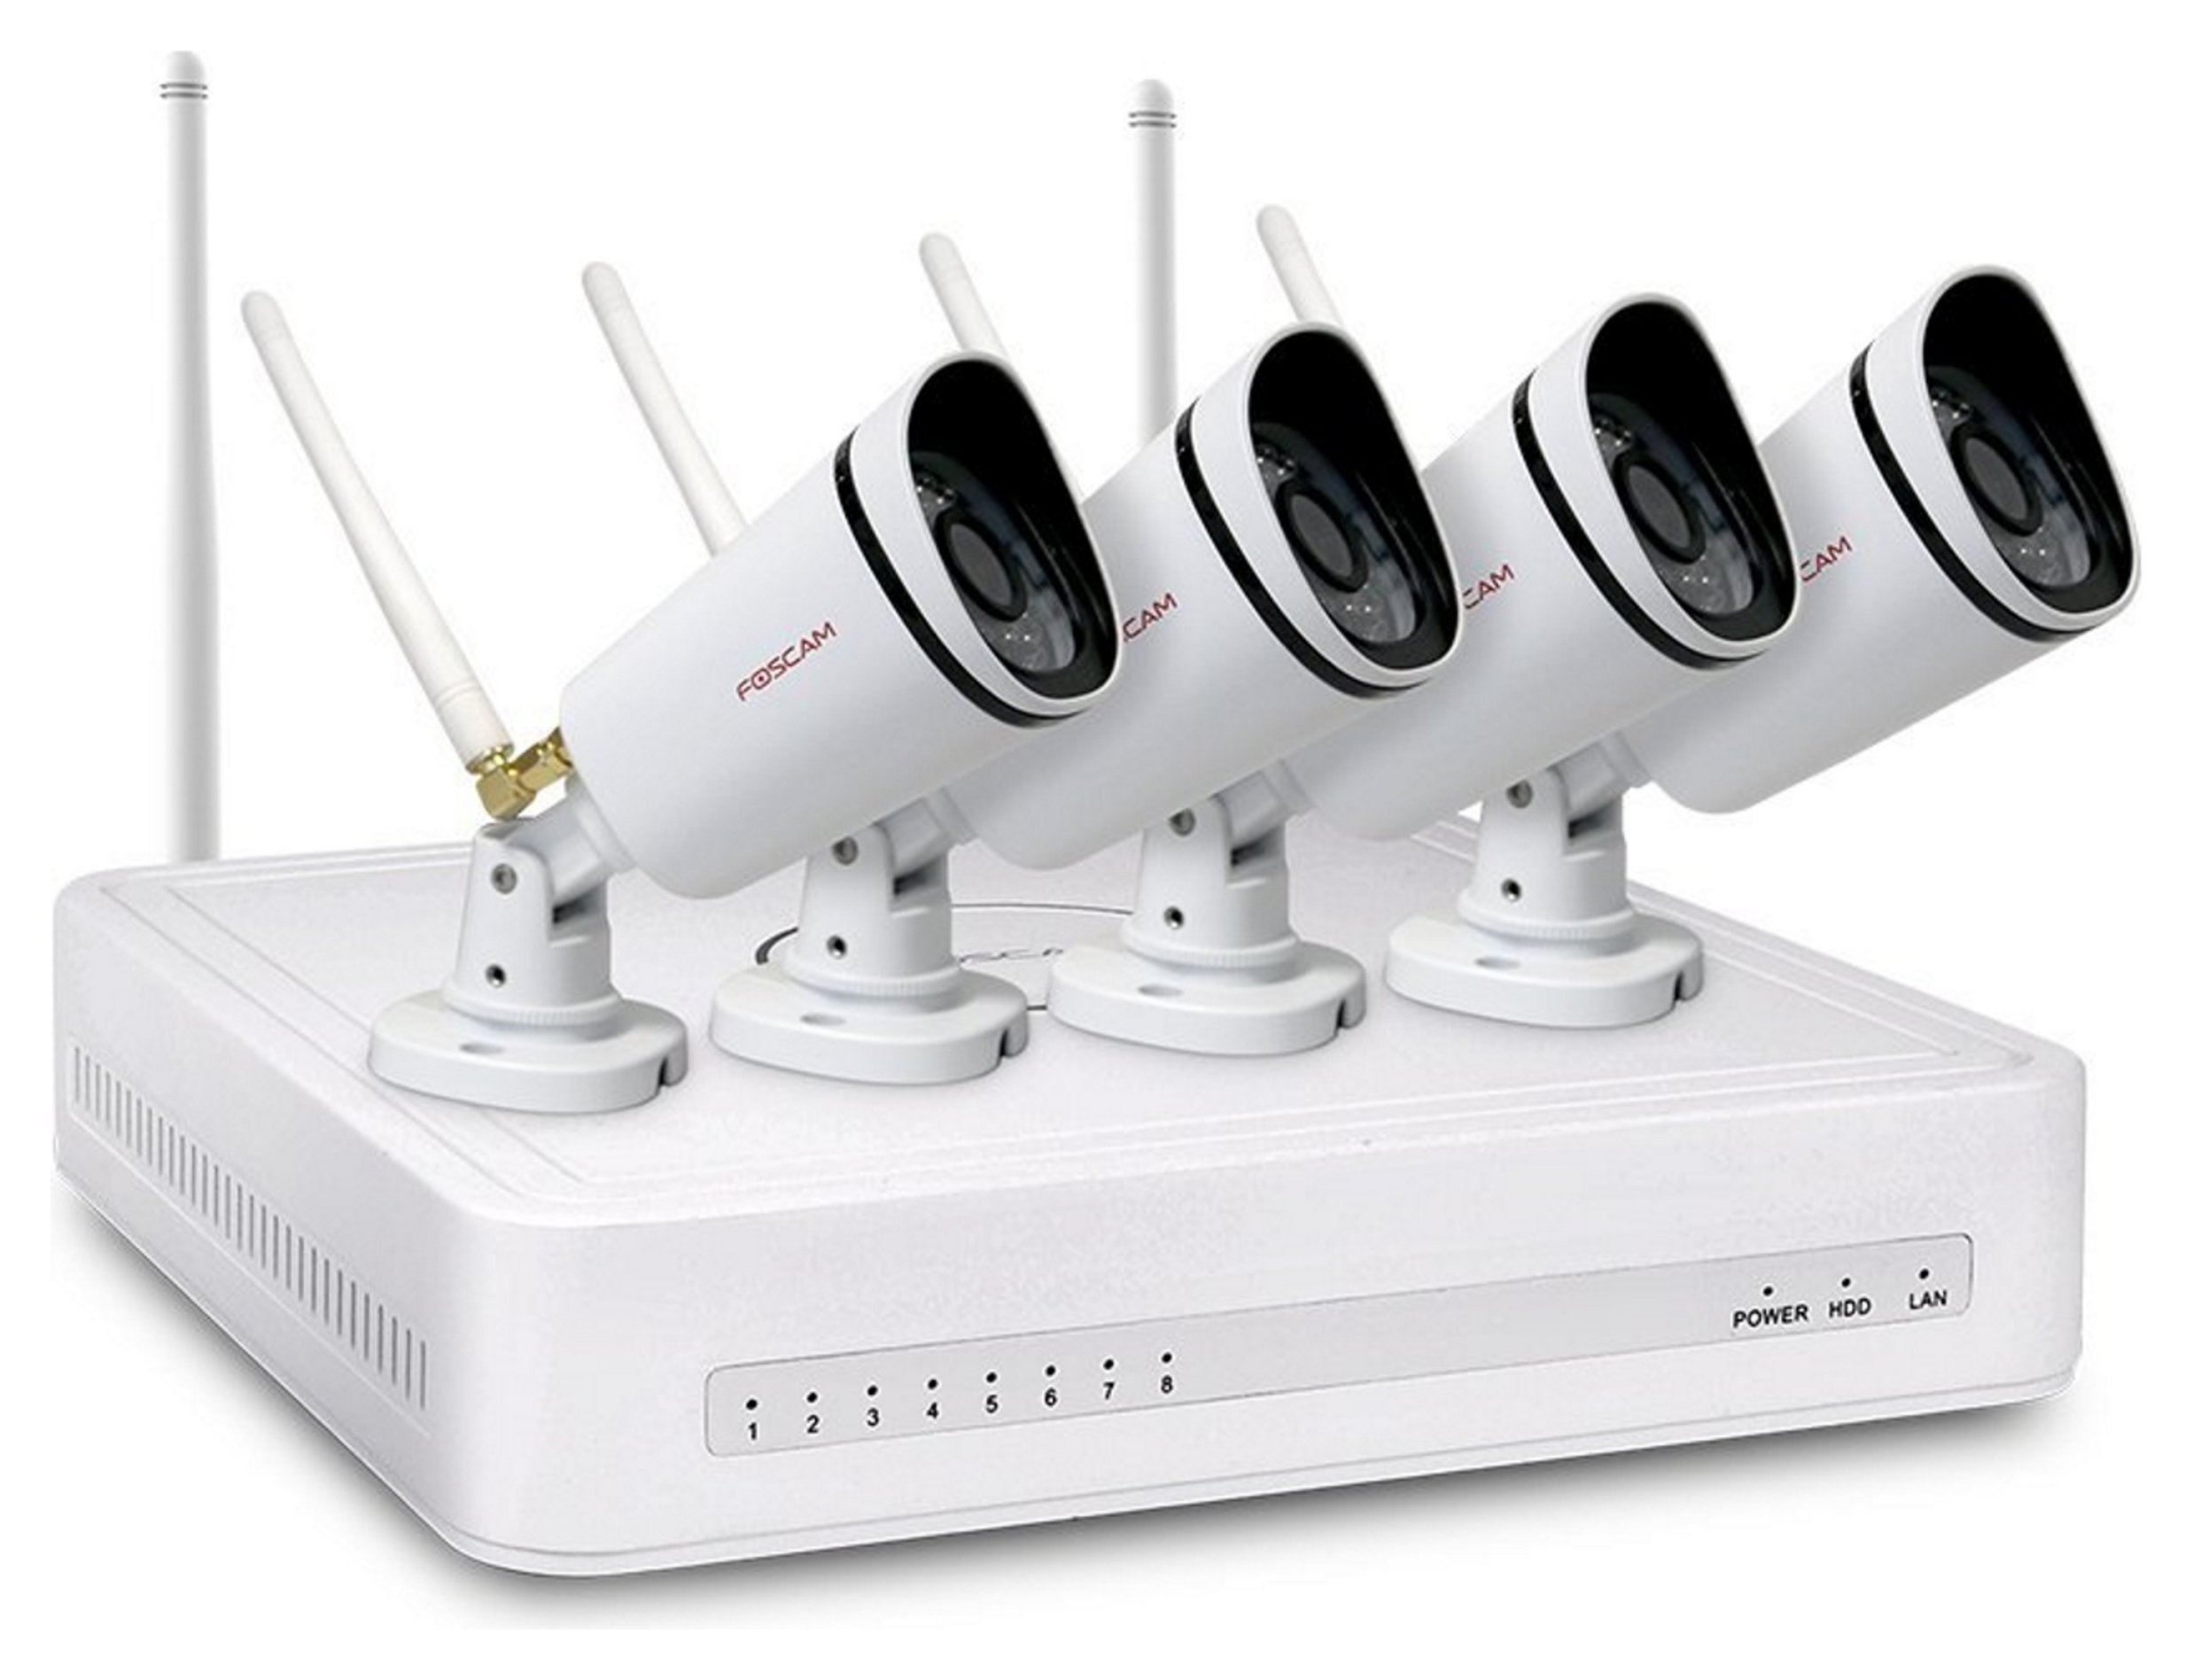 Image of Foscam FN3104W B4 Wi-Fi CCTV Security System Kit